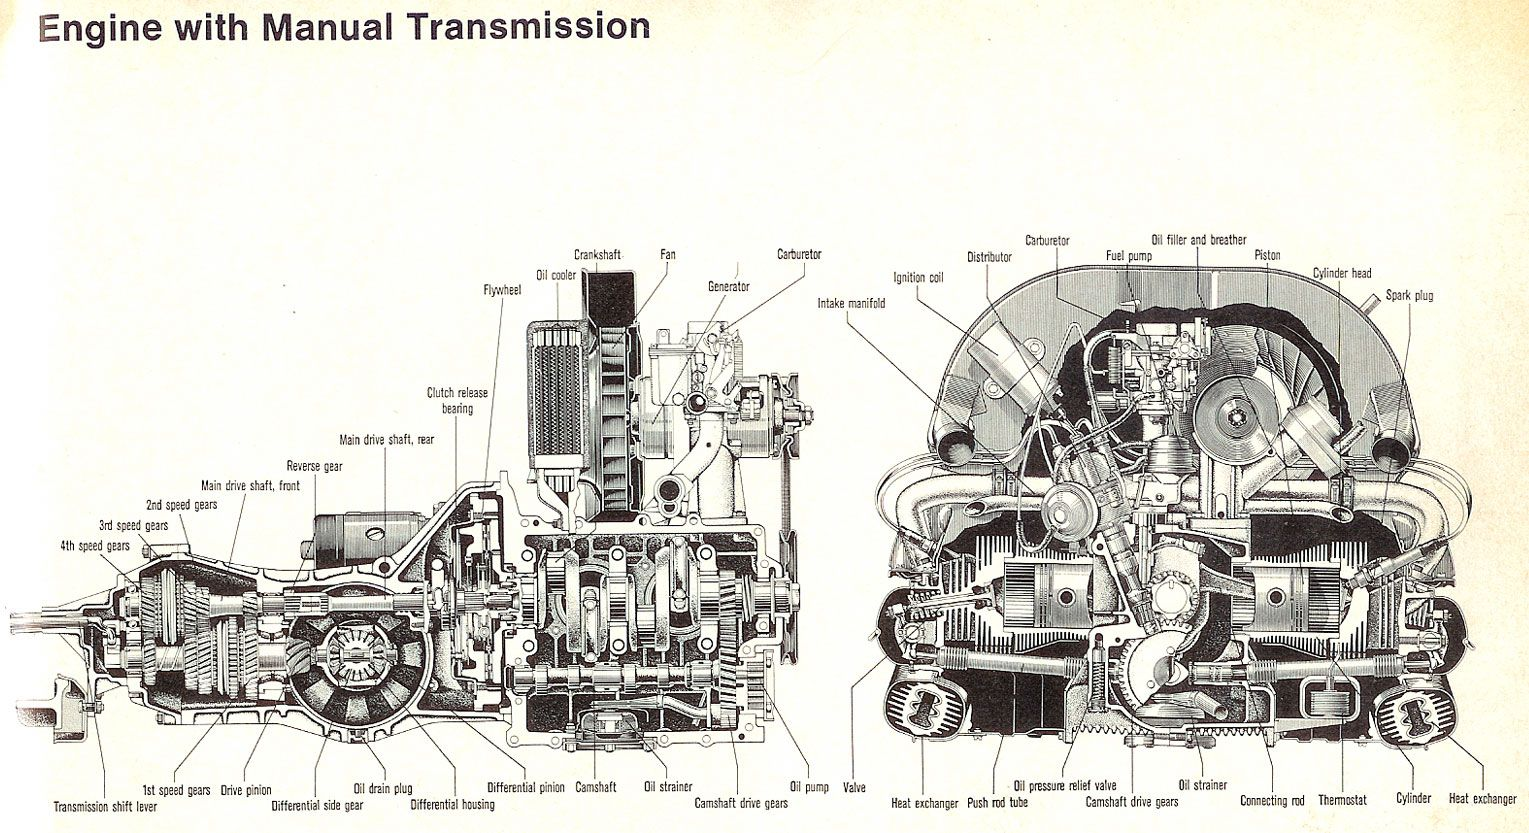 Porsche 914 Engine Dolly Diagram Wiring Third Level 911 Library